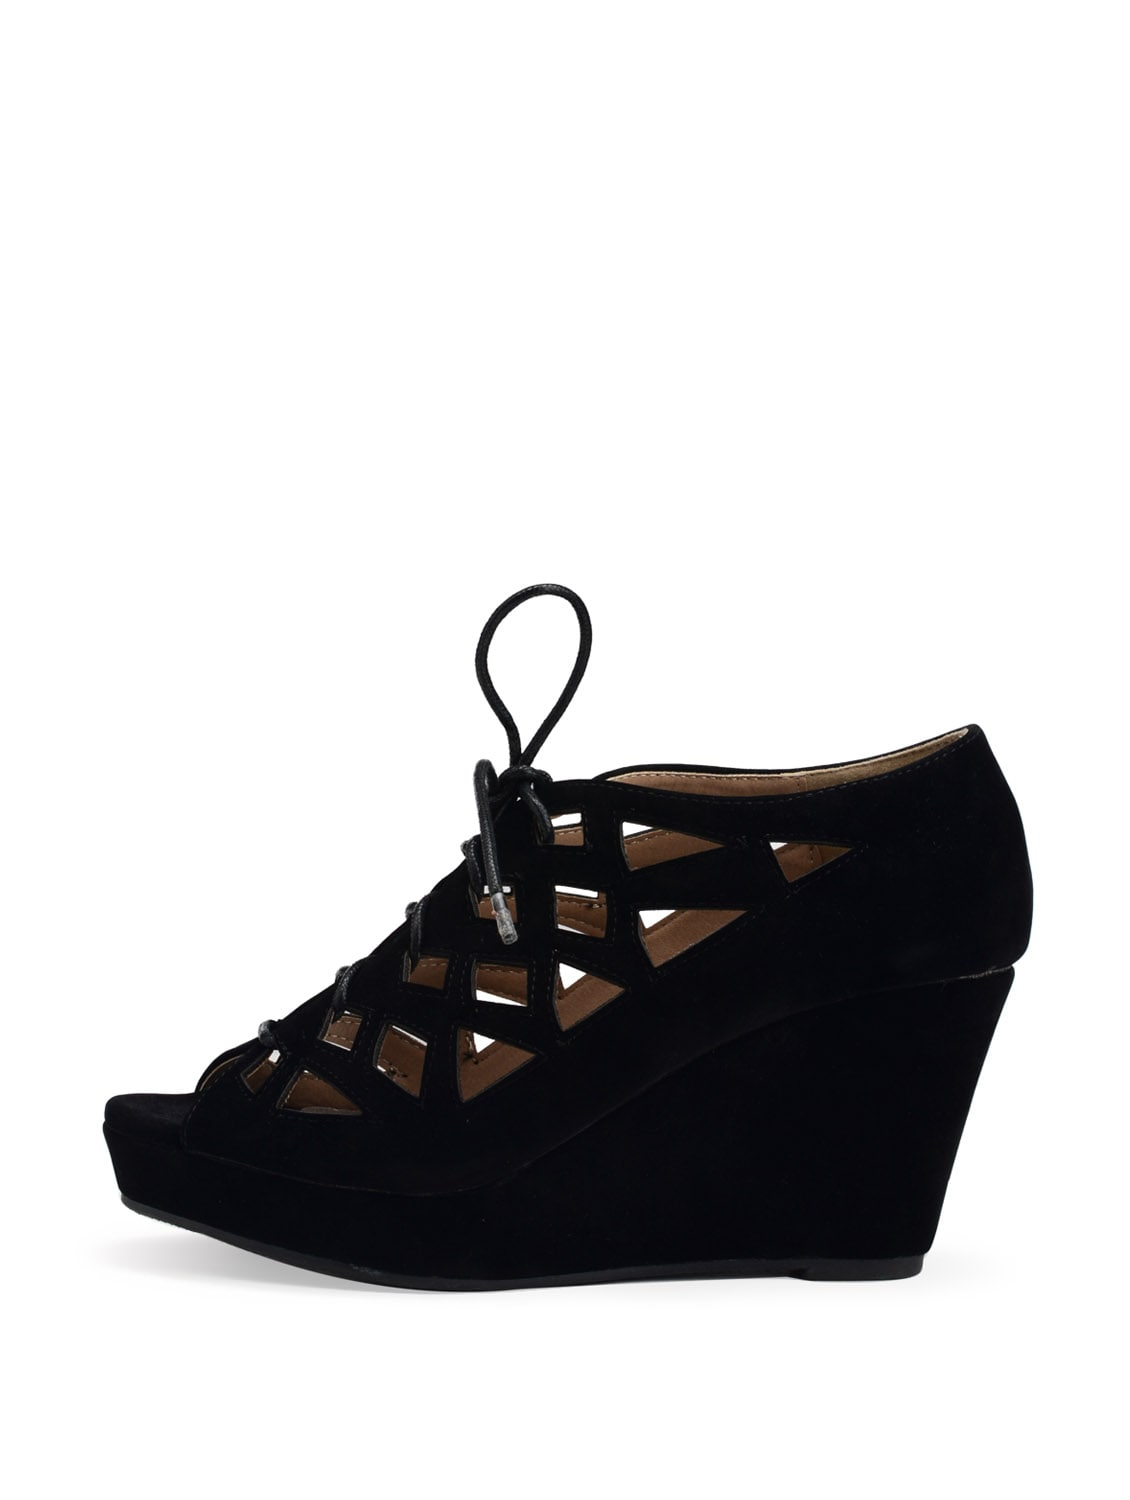 4d66e5a0c Buy Black Lace Up Wedge Sandals for Women from Carlton London for ₹3495 at  0% off